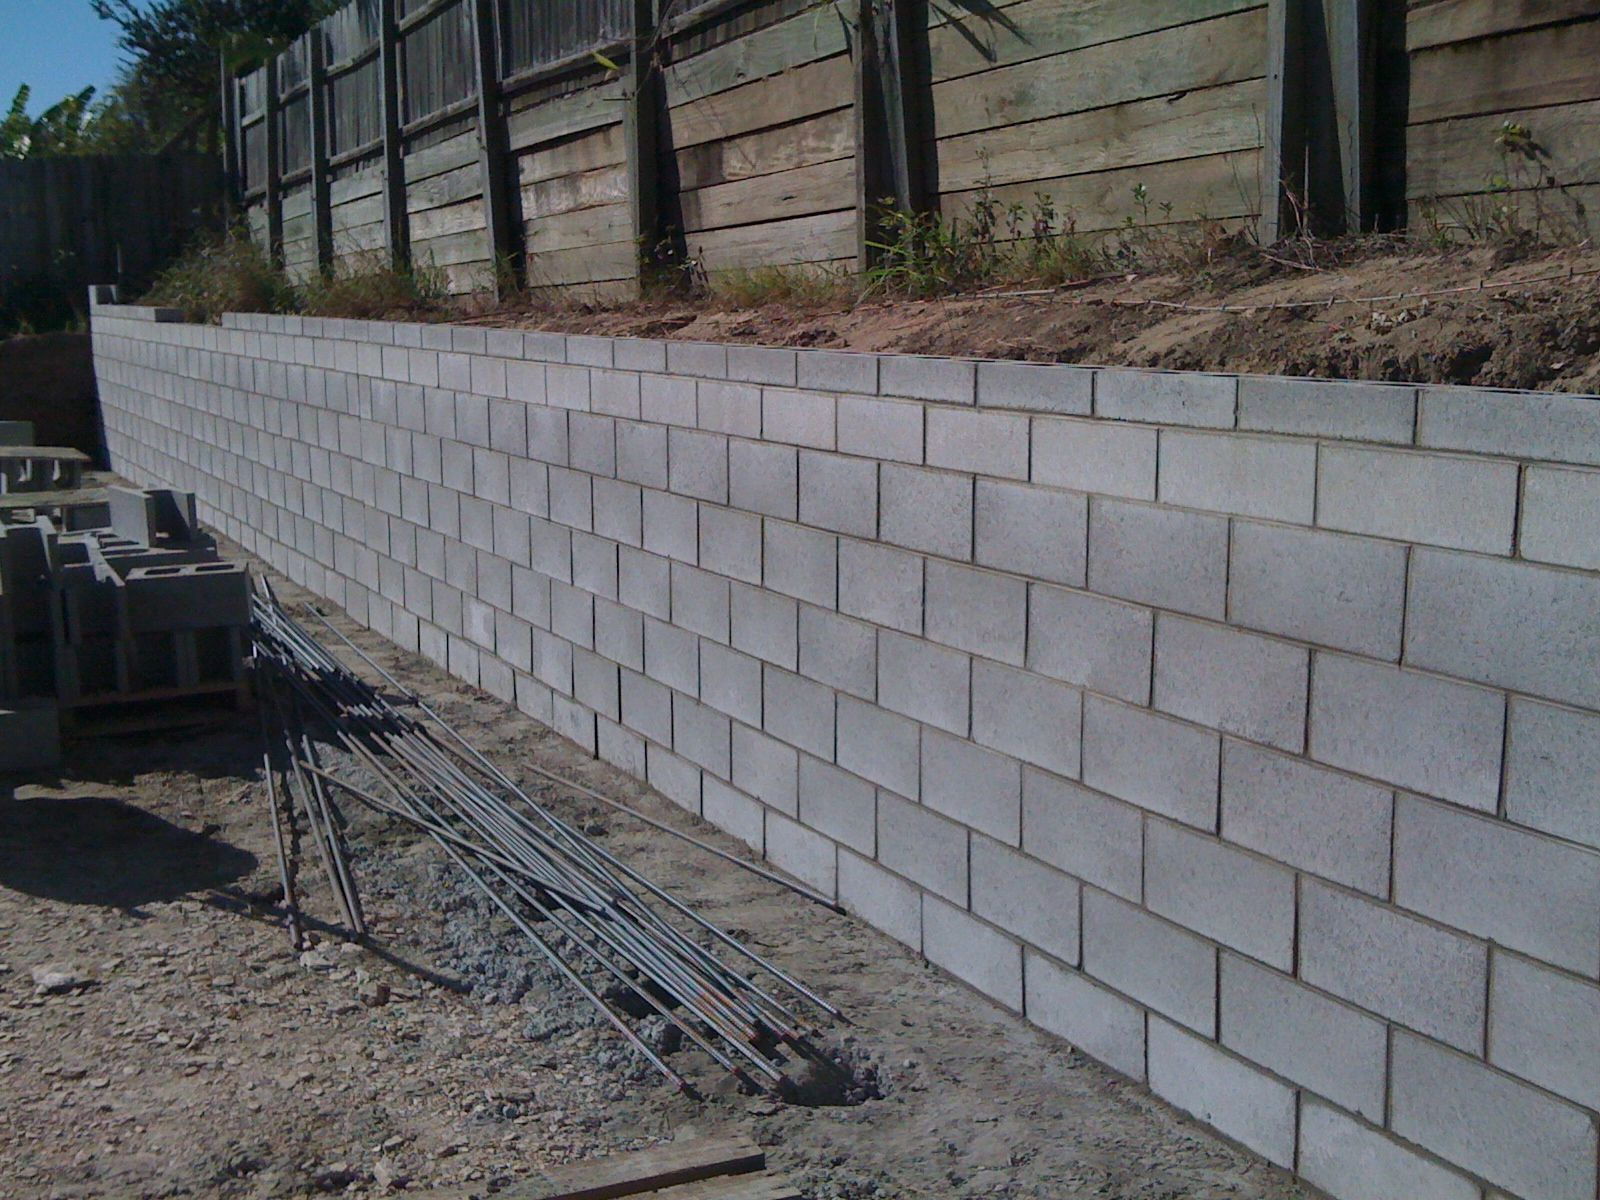 You May Generally Estimate The Number Of Blocks And Mortar You Ll Need For Any Particu Retaining Wall Design Concrete Block Retaining Wall Cheap Retaining Wall